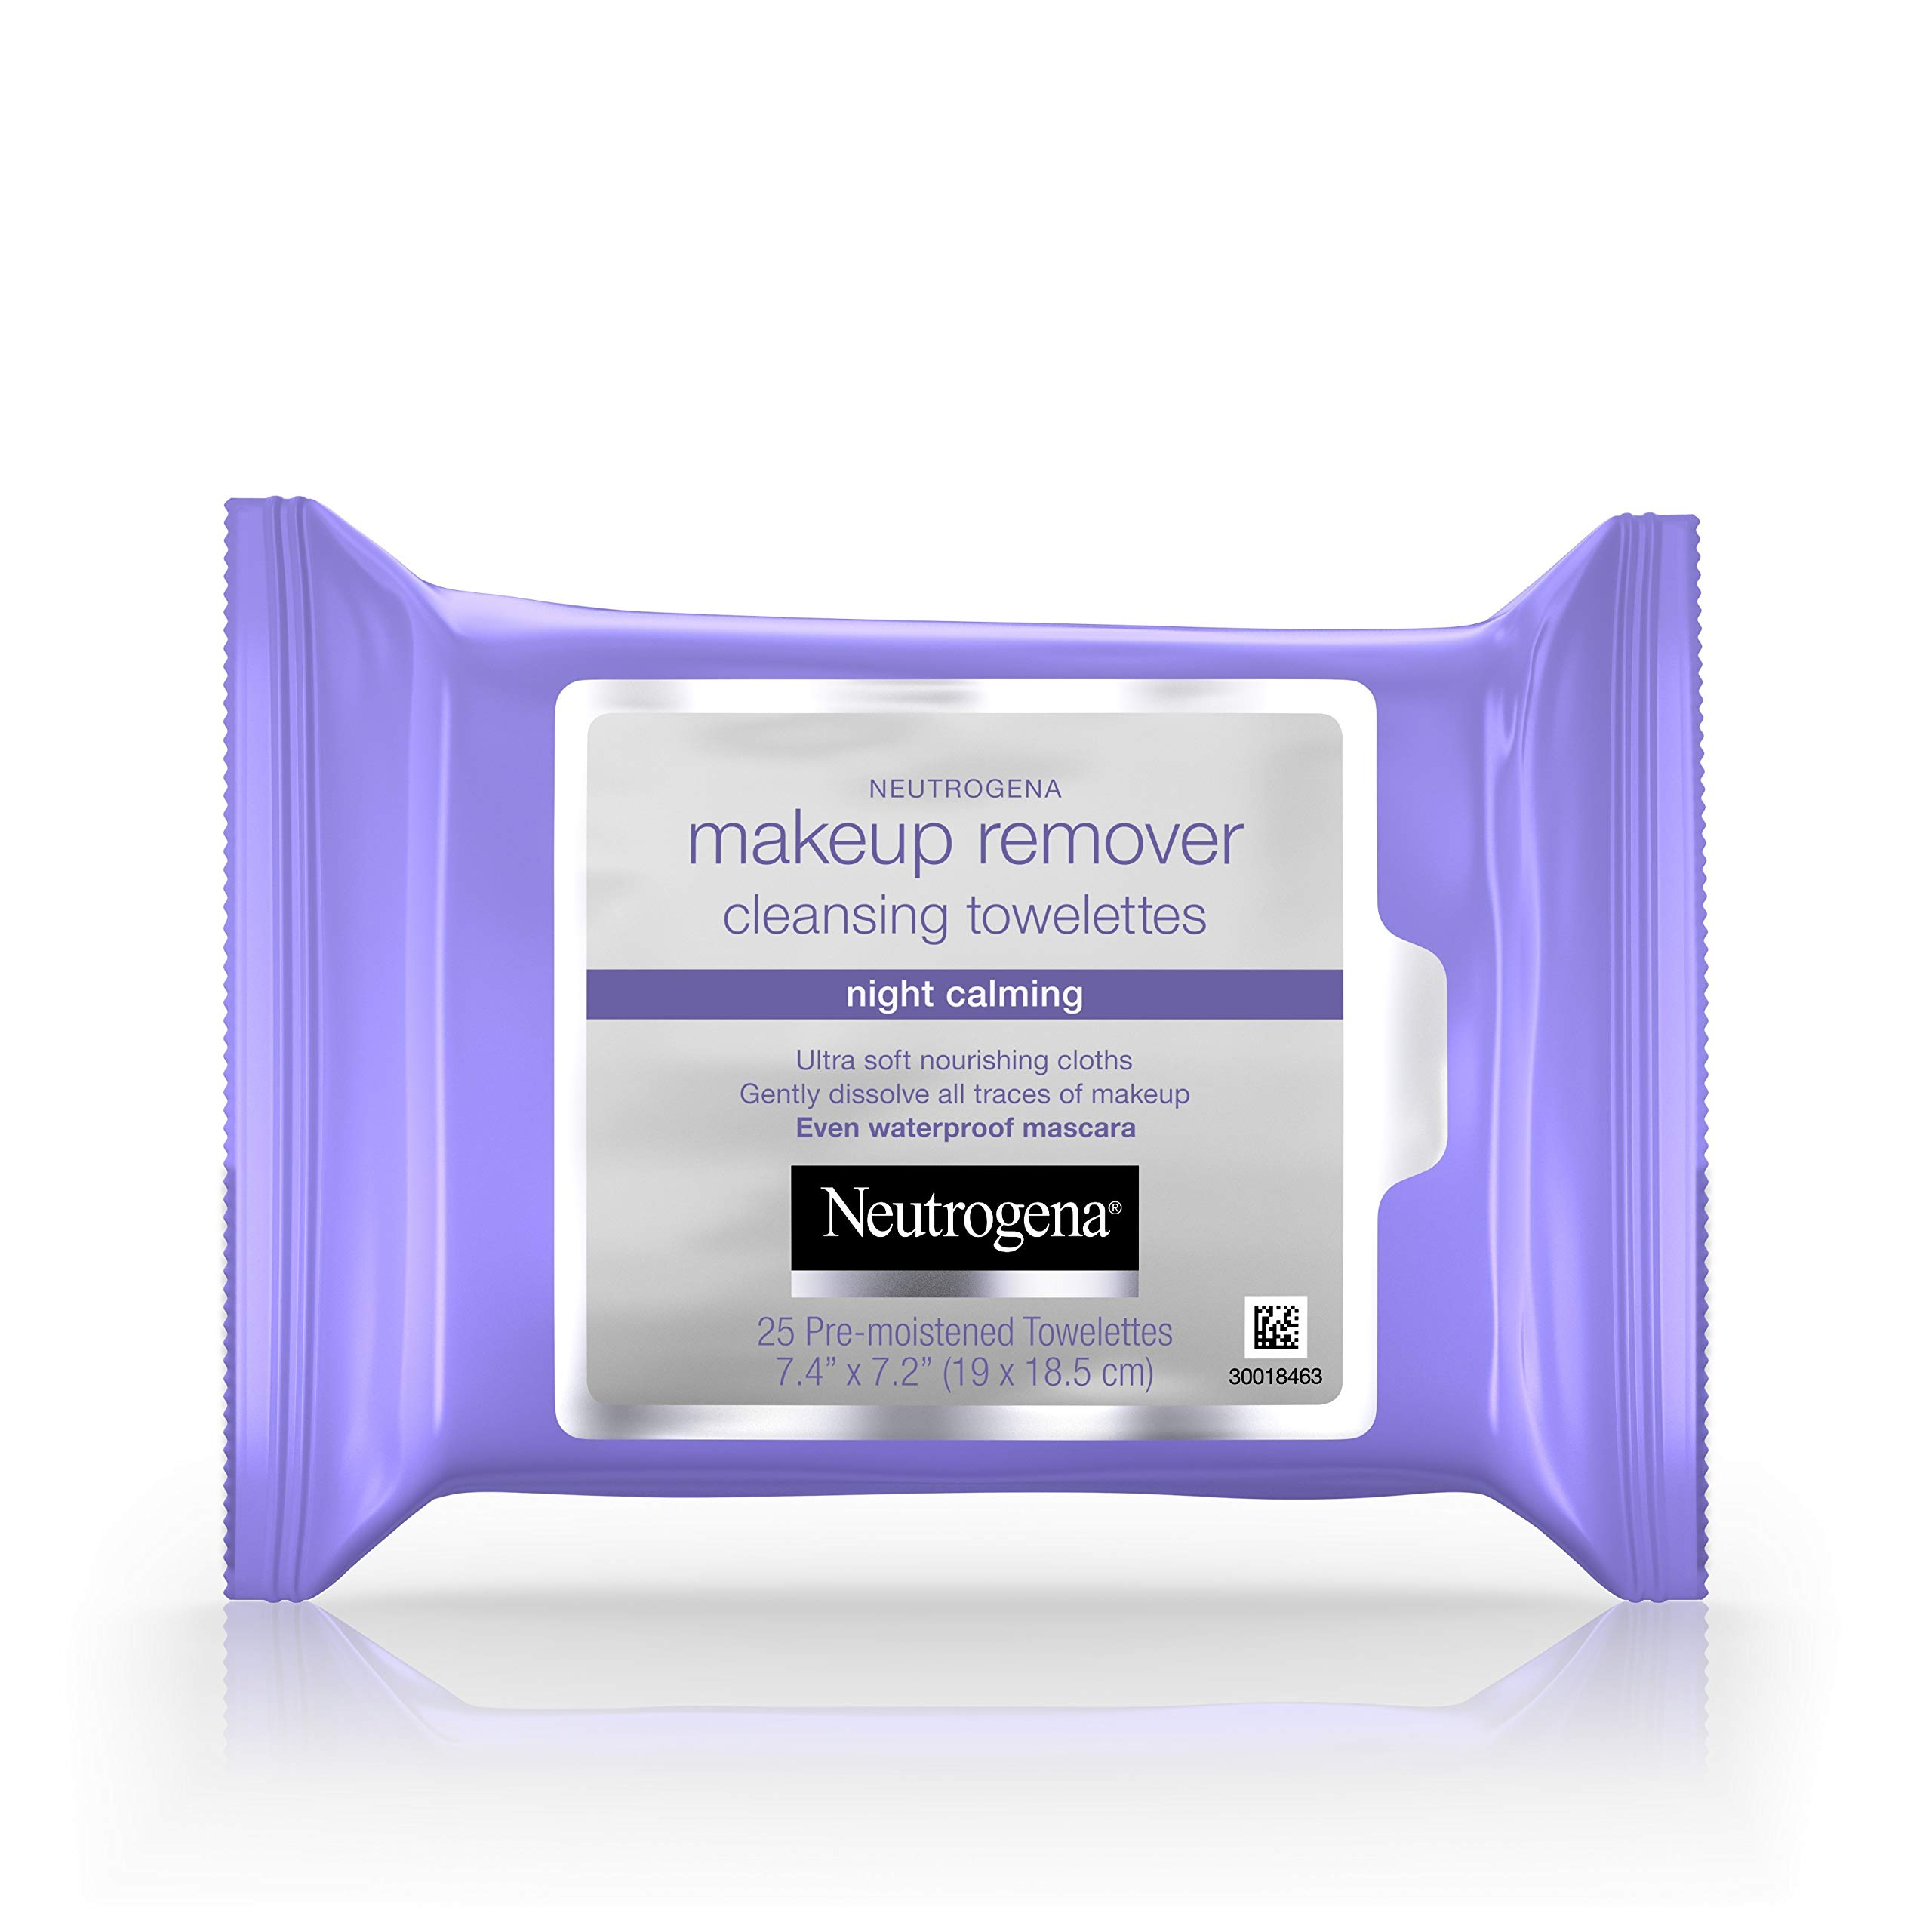 Neutrogena Makeup Remover Night Calming Cleansing Towelettes, Disposable Nighttime Face Wipes to Remove Dirt, Oil & Makeup, 25 ct